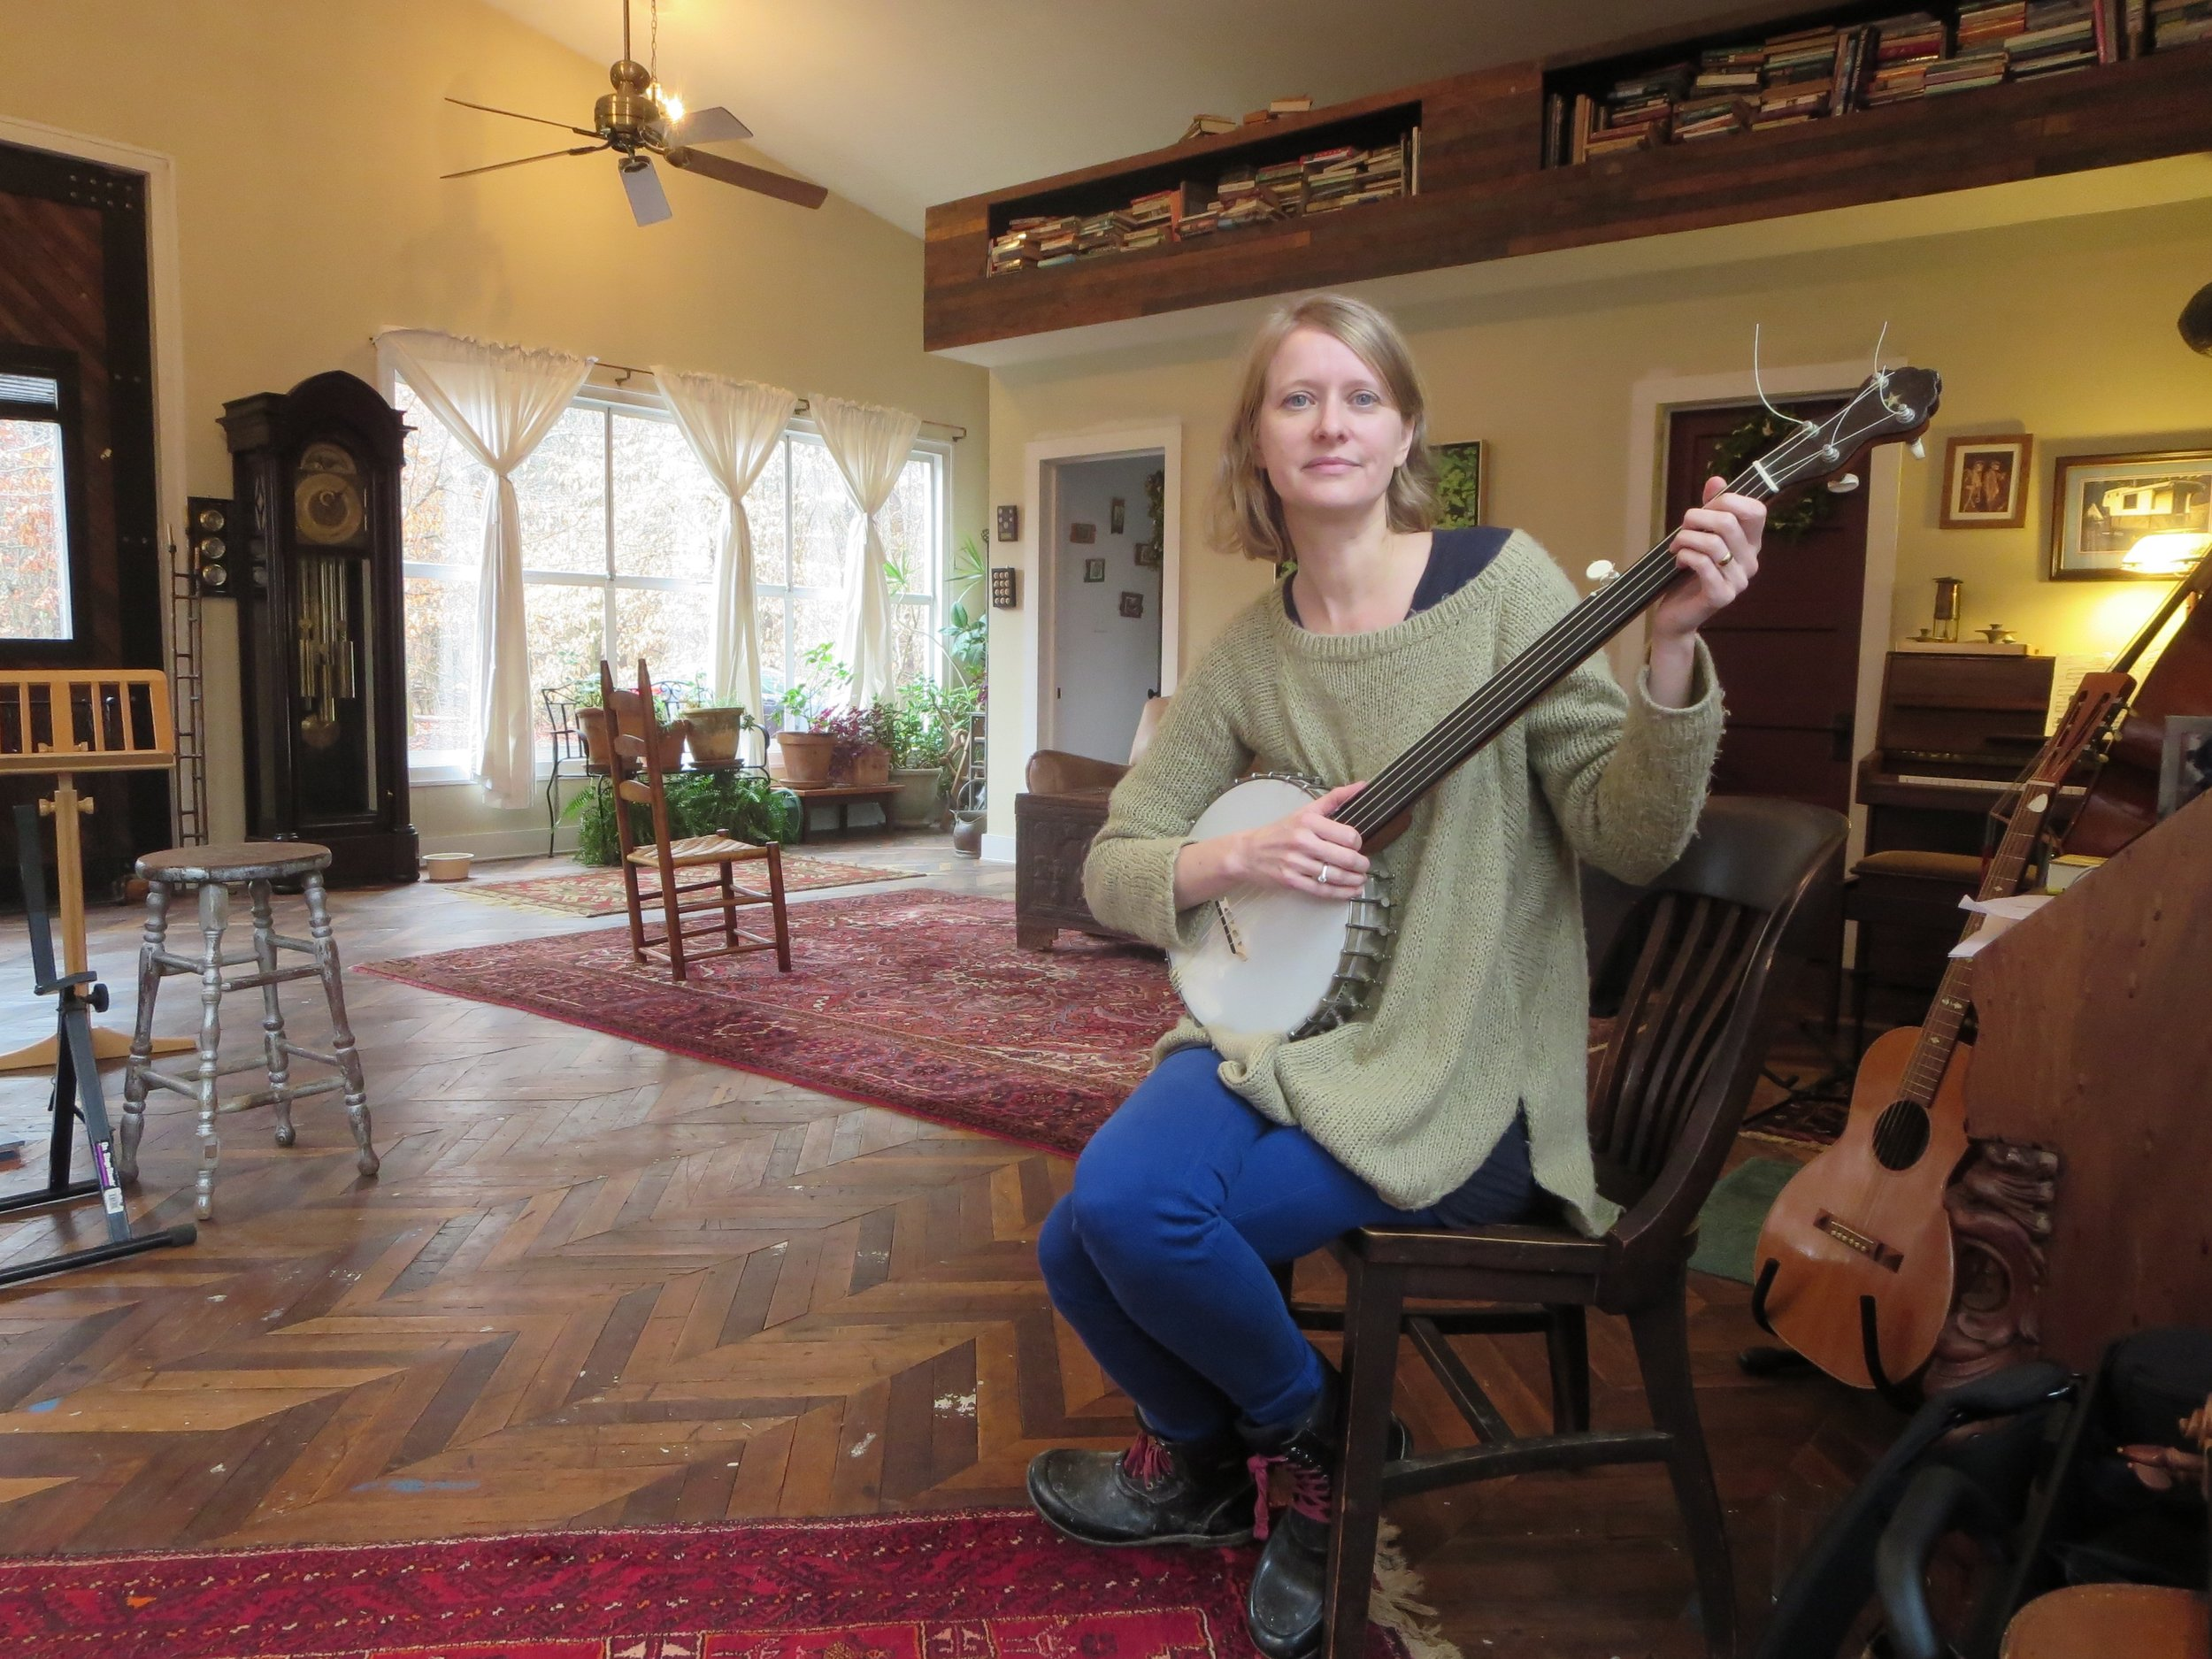 Alex Caton in her studio in Virginia. FIlled with light, instruments, and books.